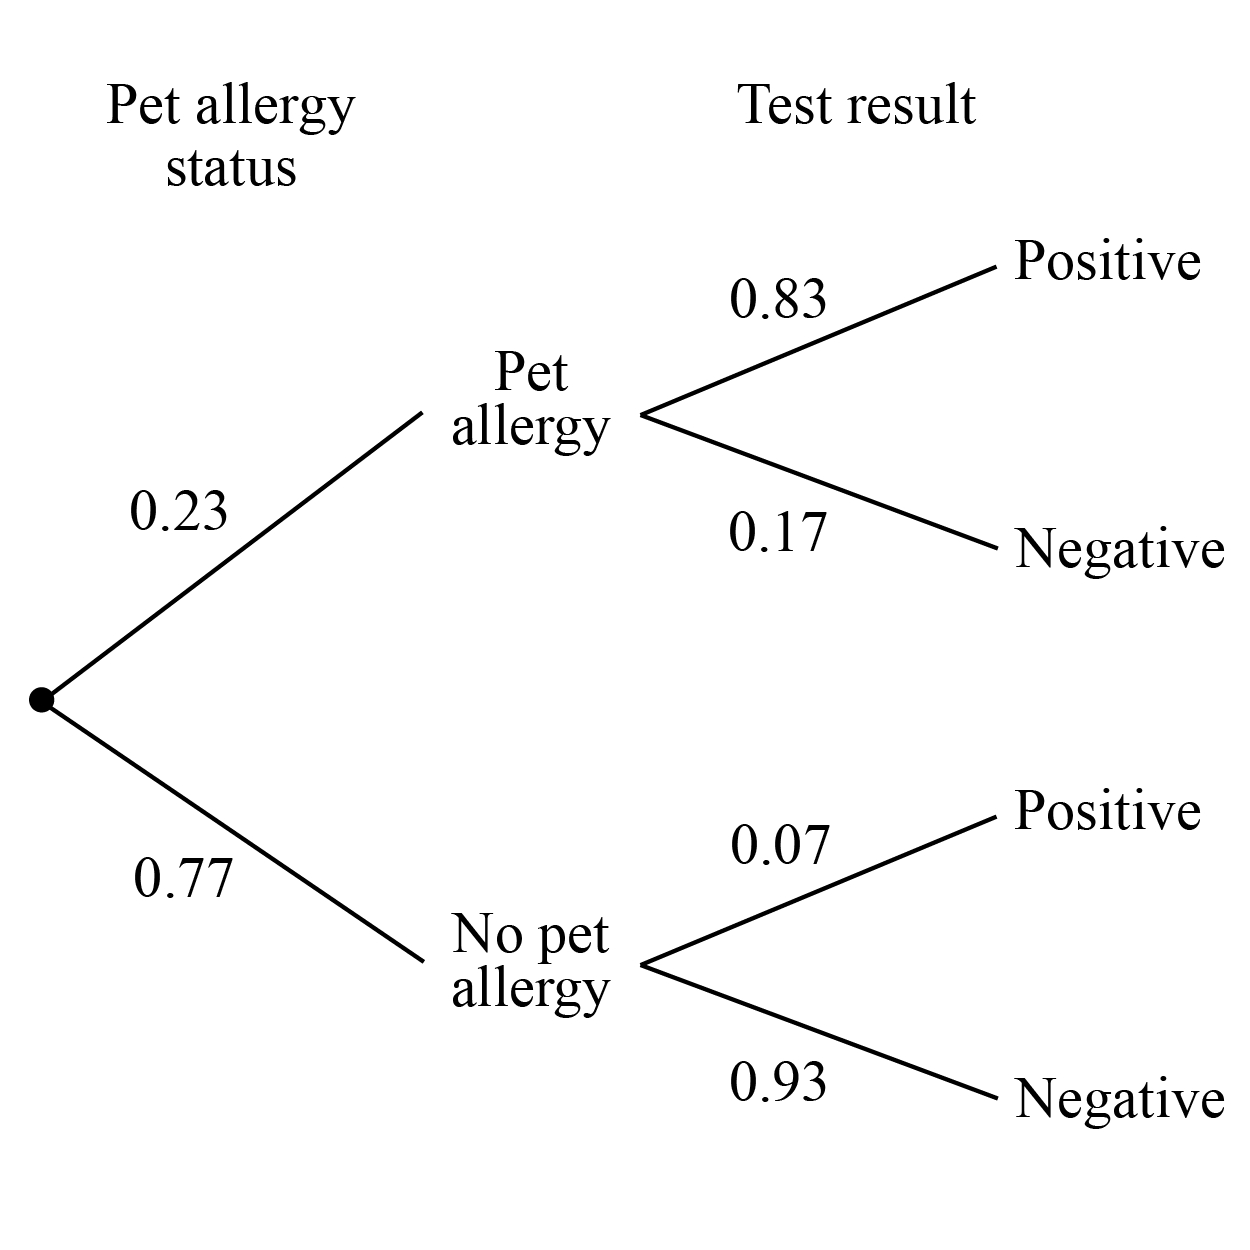 small resolution of test result pet allergy status positive 0 83 pet allergy 0 23 0 17 negative positive 0 07 0 77 no